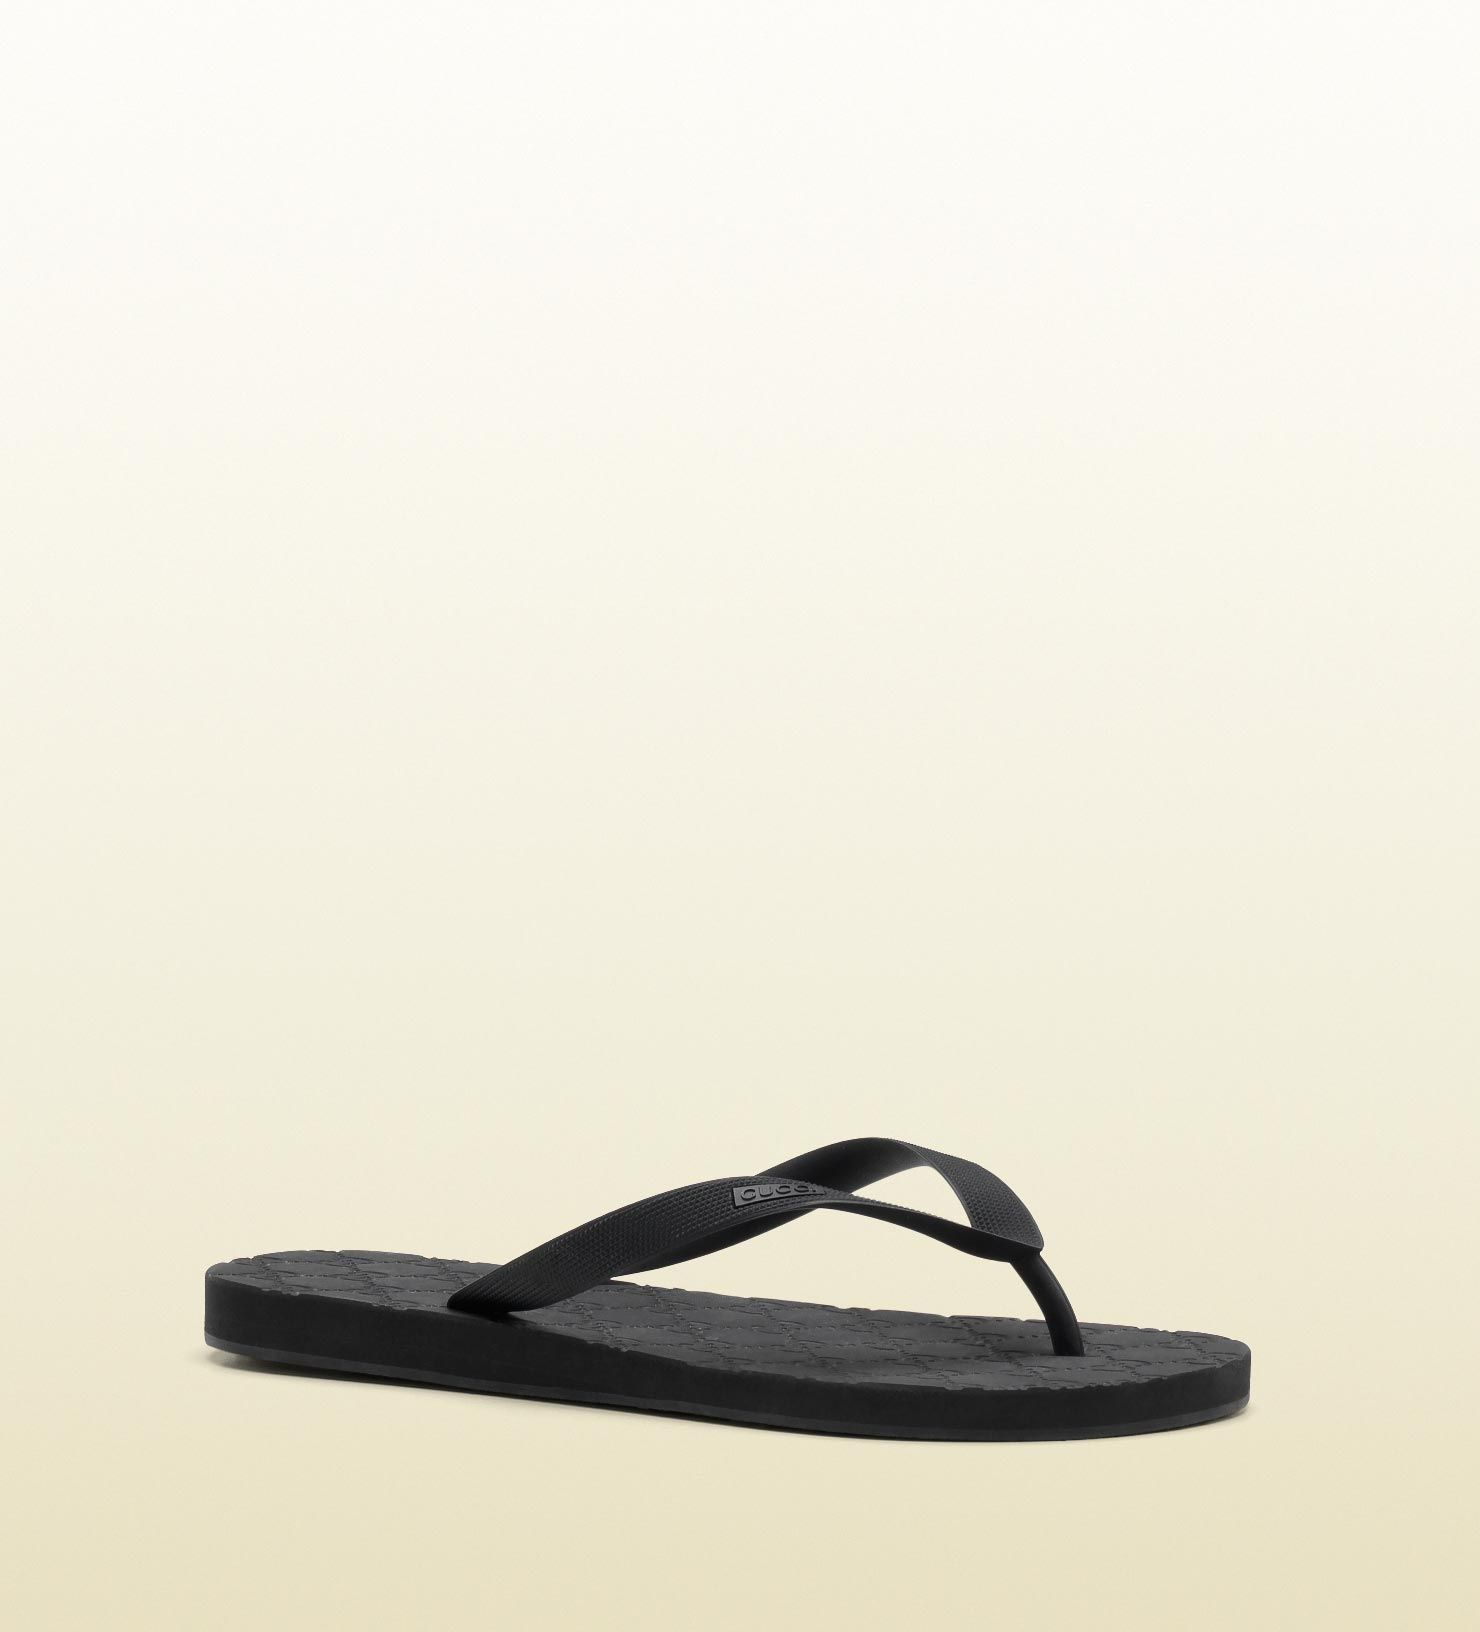 75377ebcb50 Gucci - 283029 J8700 1000 - gucci logo thong sandal - website exclusive black  rubber Made in Italy gucci embossed textured thong GG embossed top sole  ...